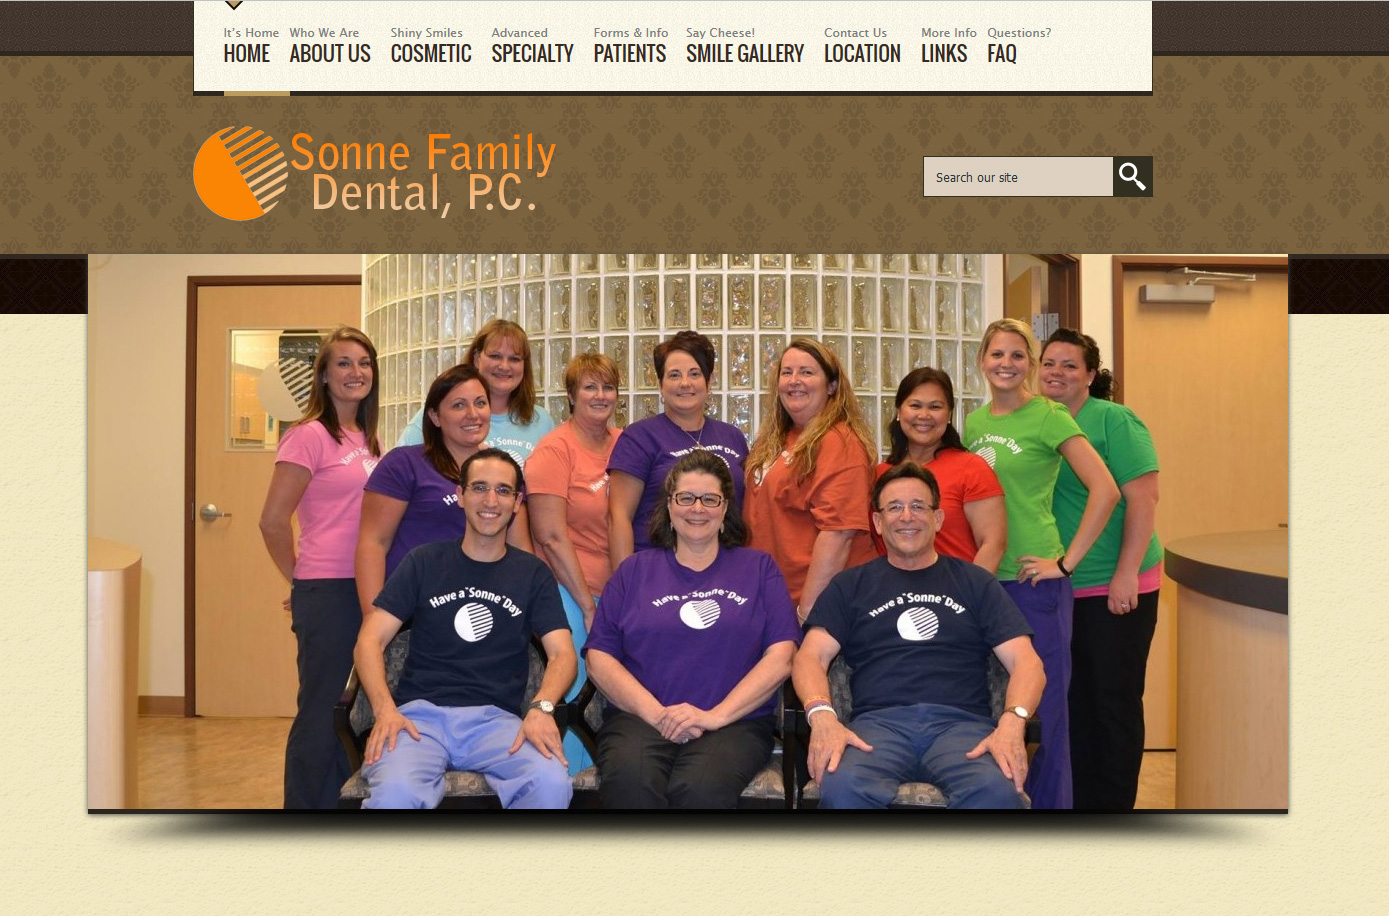 sonne family dental